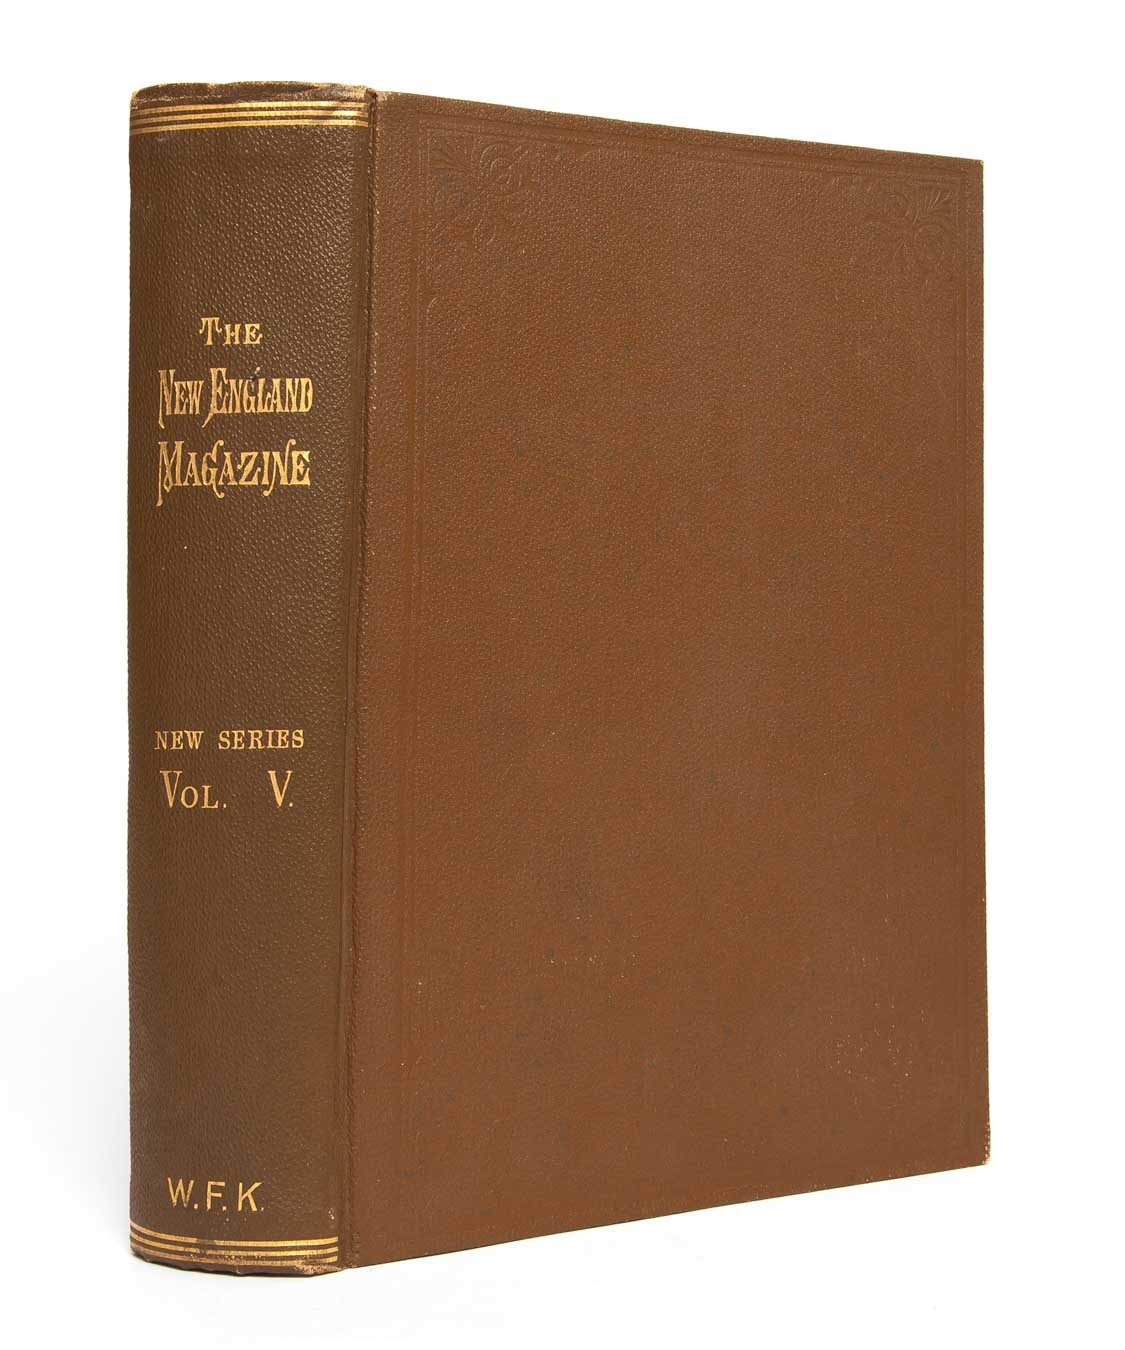 The Yellow Wallpaper In New England Magazine January 1892 647 57